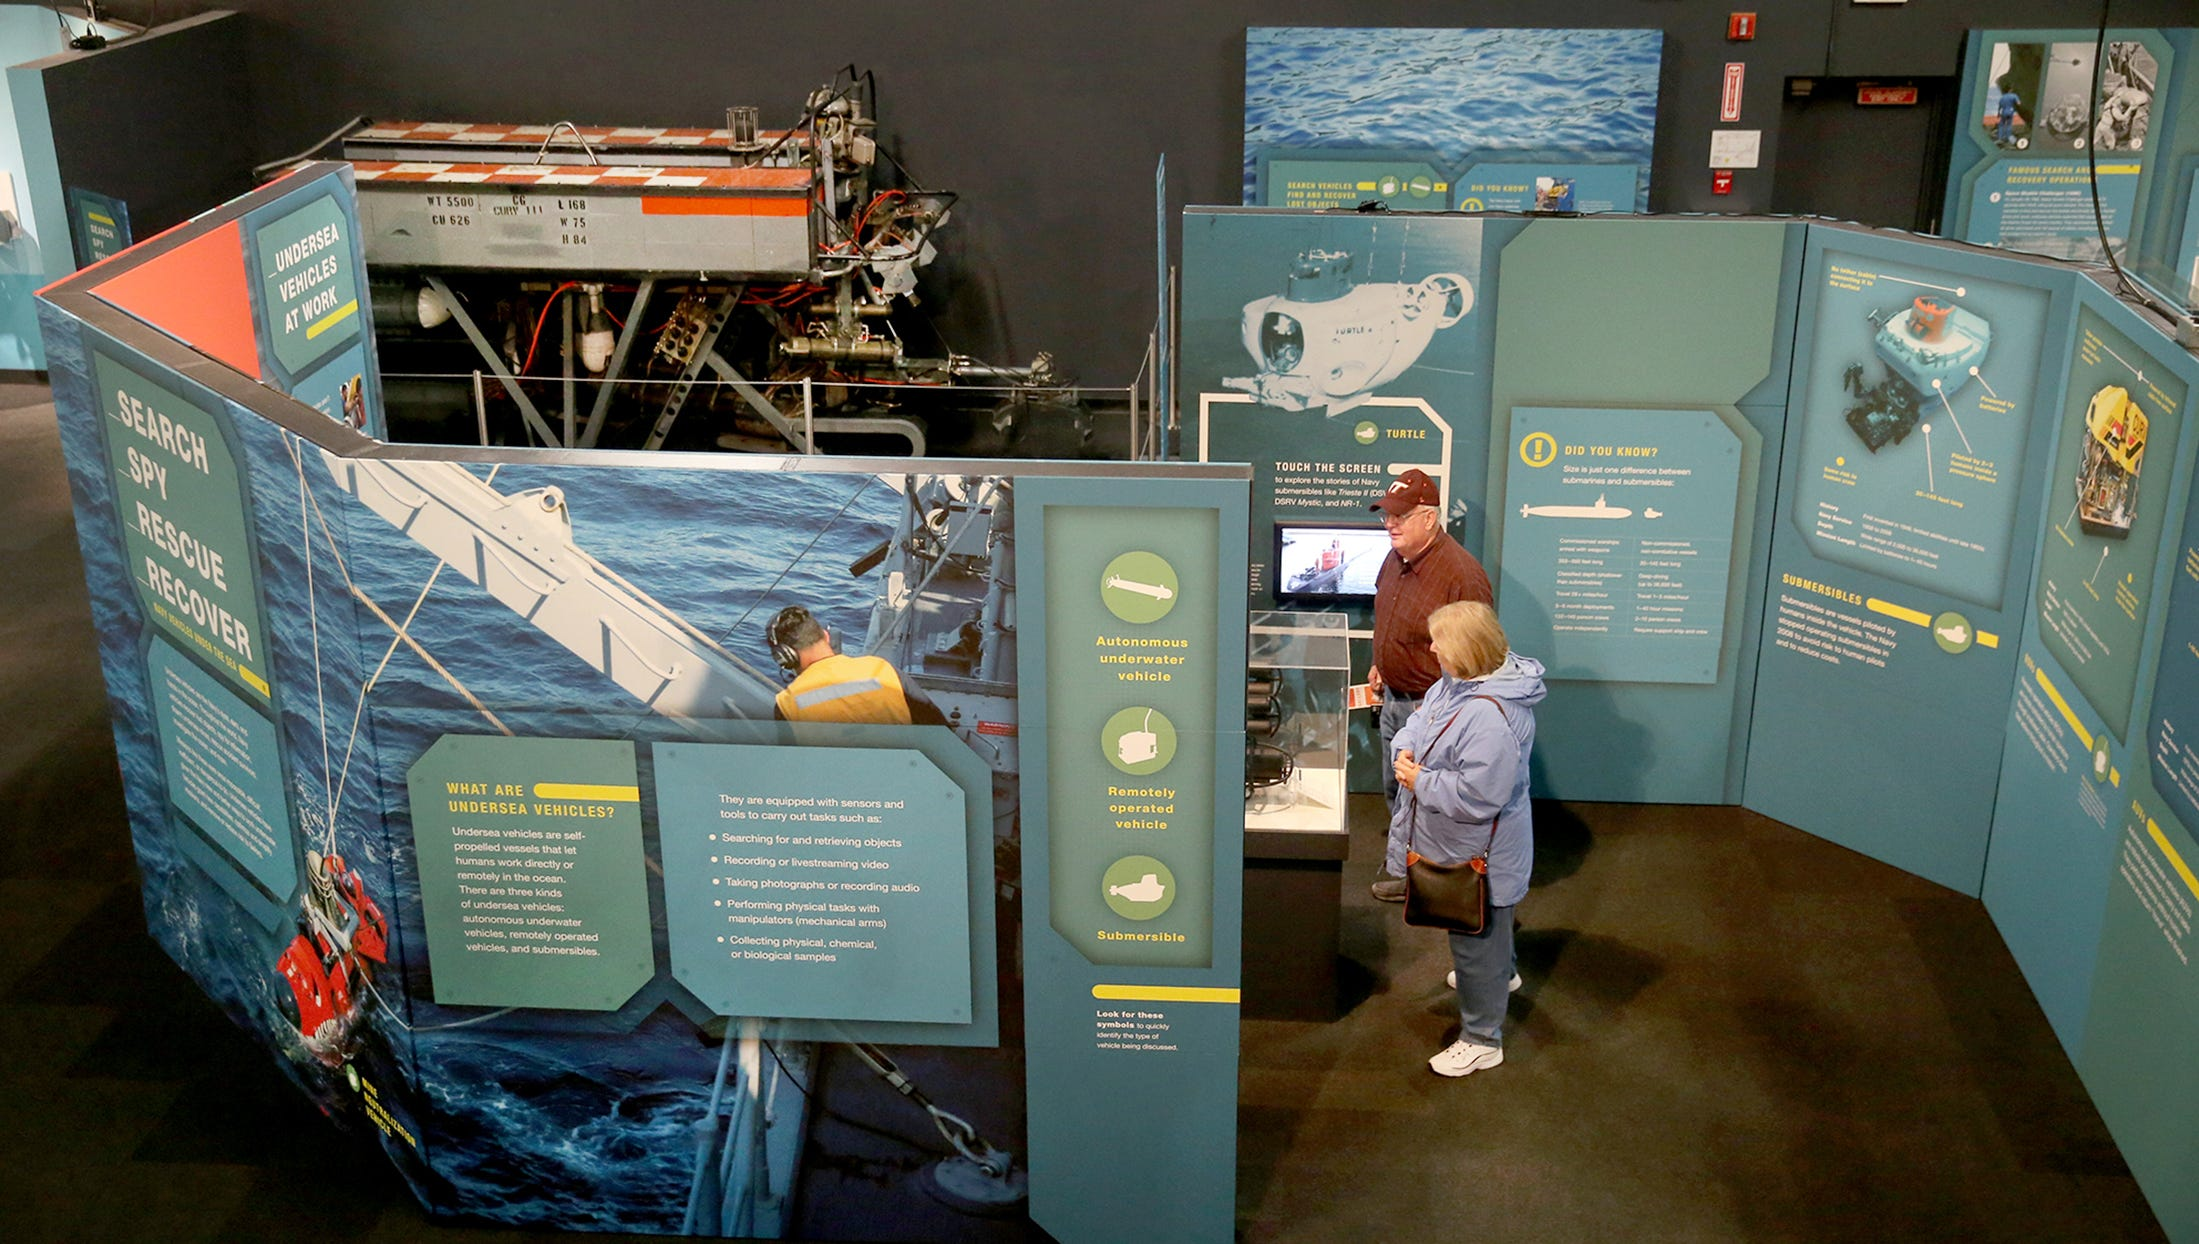 James and Dot Gwaltney of Portsmouth, VA look over the new exhibit  to highlight the growing use of unmanned undersea vehicles for missions that once had been too dangerous for the Navy to carry out At the Keyport Naval Undersea Museum. Undersea vehicles can search for and recover lost objects, collect data, disarm undersea mines and rescue accident survivors - all in places where manned crafts can't safely operate. James worked on submarines at the Newport News, Virginia shipyard.